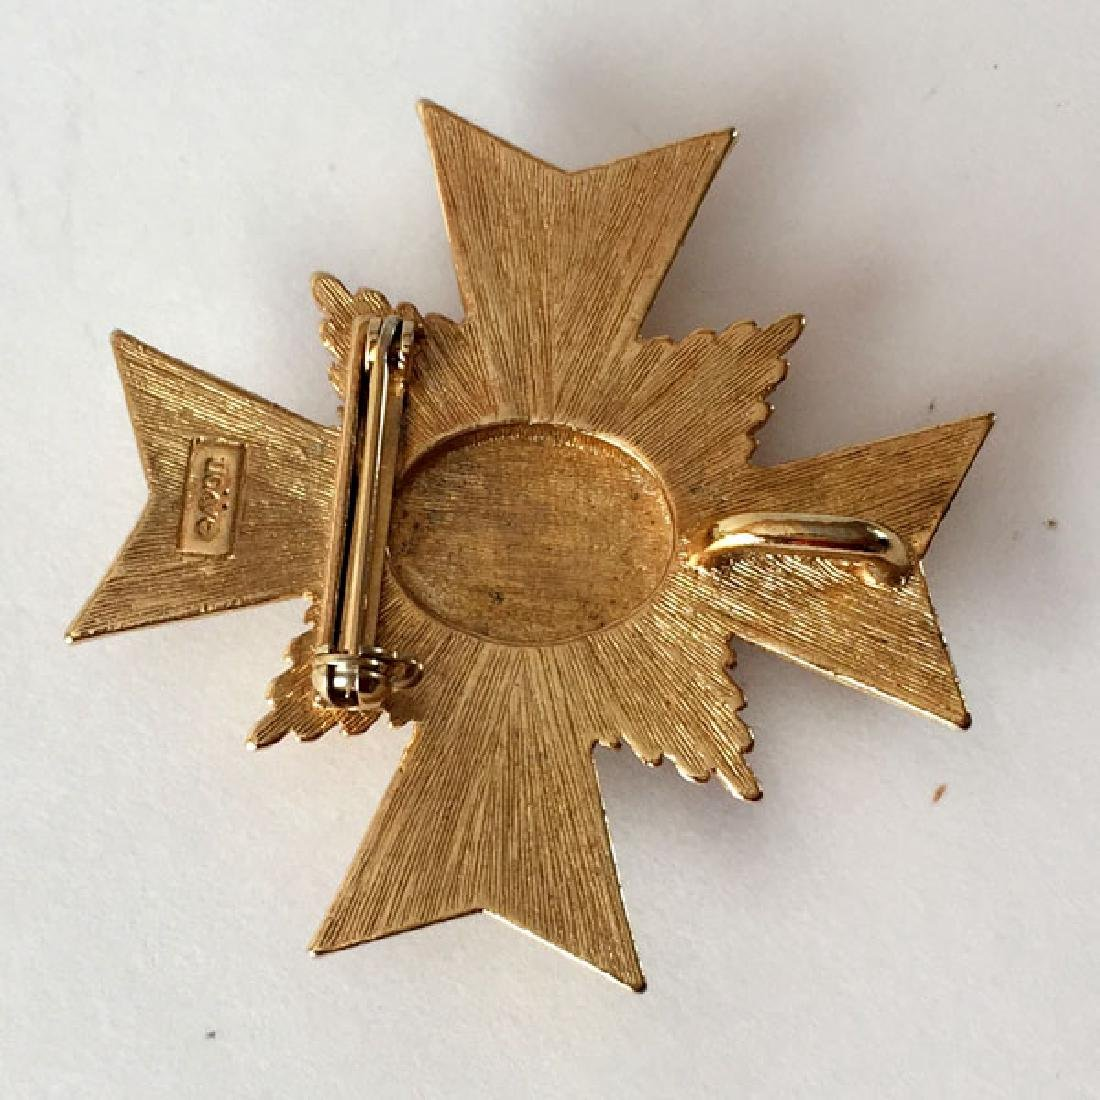 AVON: Gold plated textured CROSS shaped medal / brooch - 2